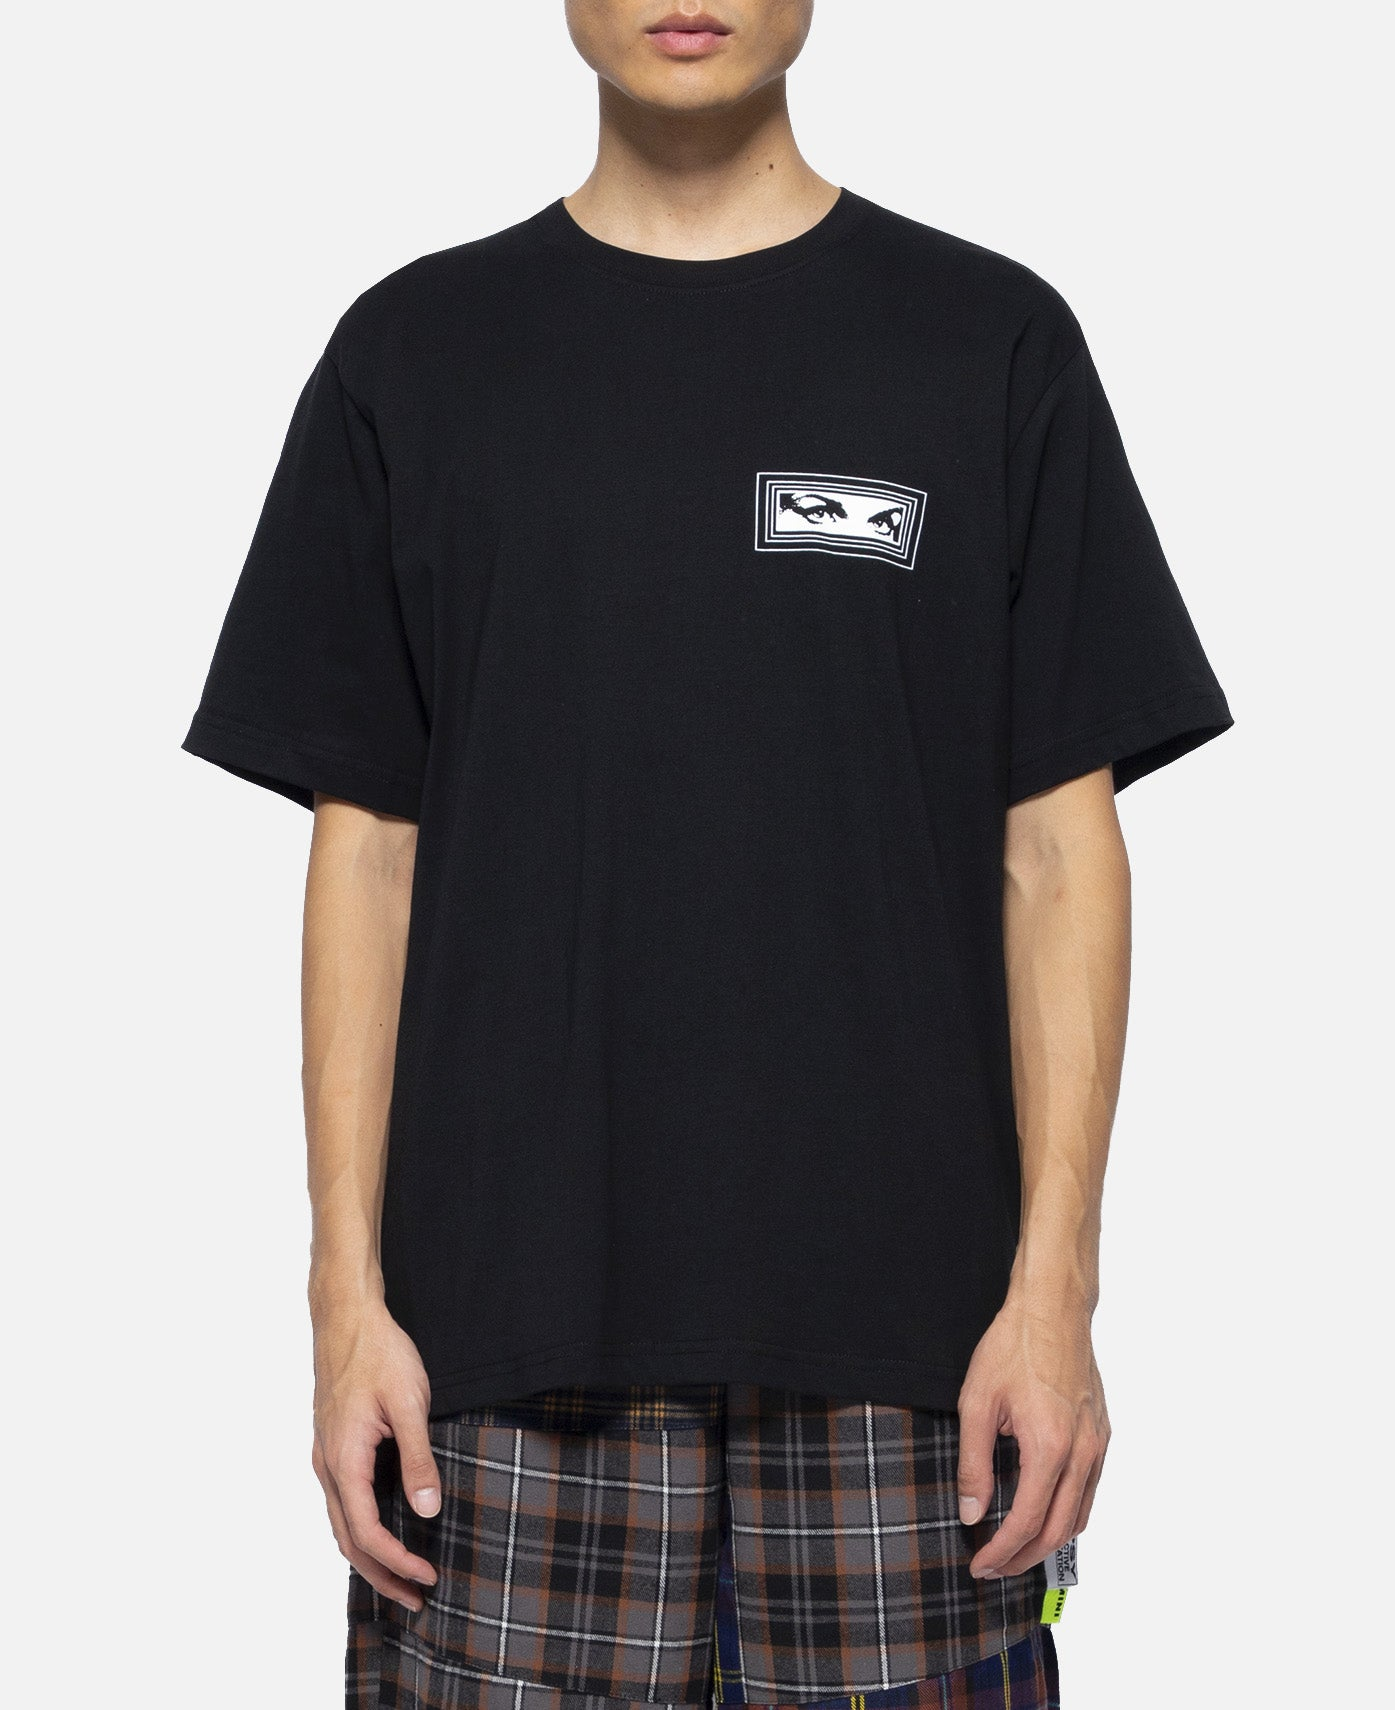 Eye See U S/S T-Shirt (Black)